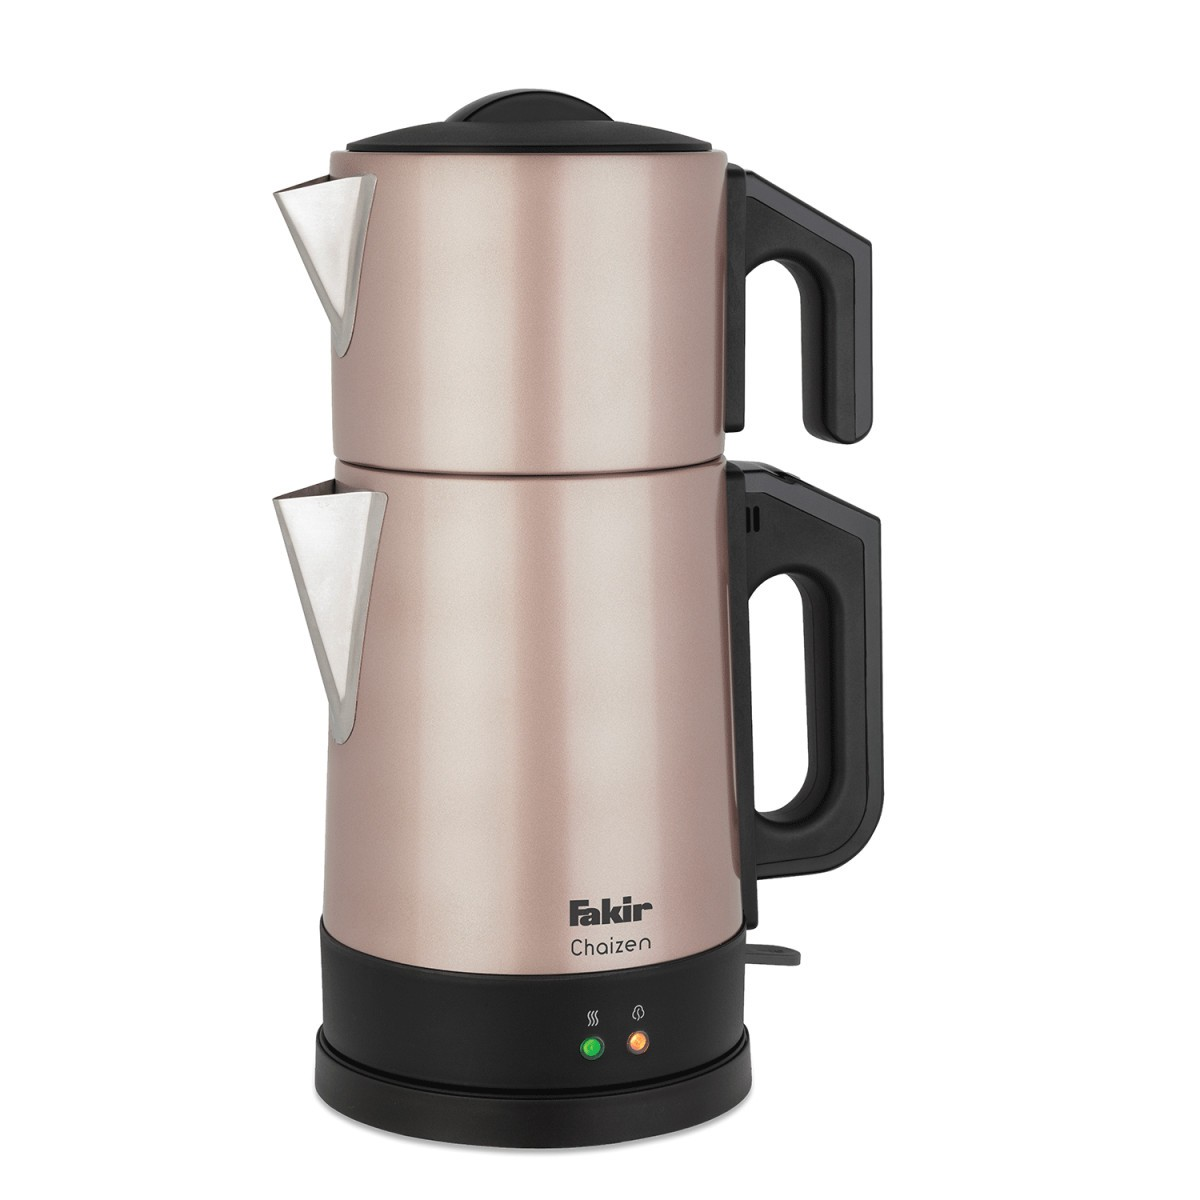 main images چای ساز فکر 1800 وات Fakir Chaizen Fakir Tea maker 1800w Chaizen